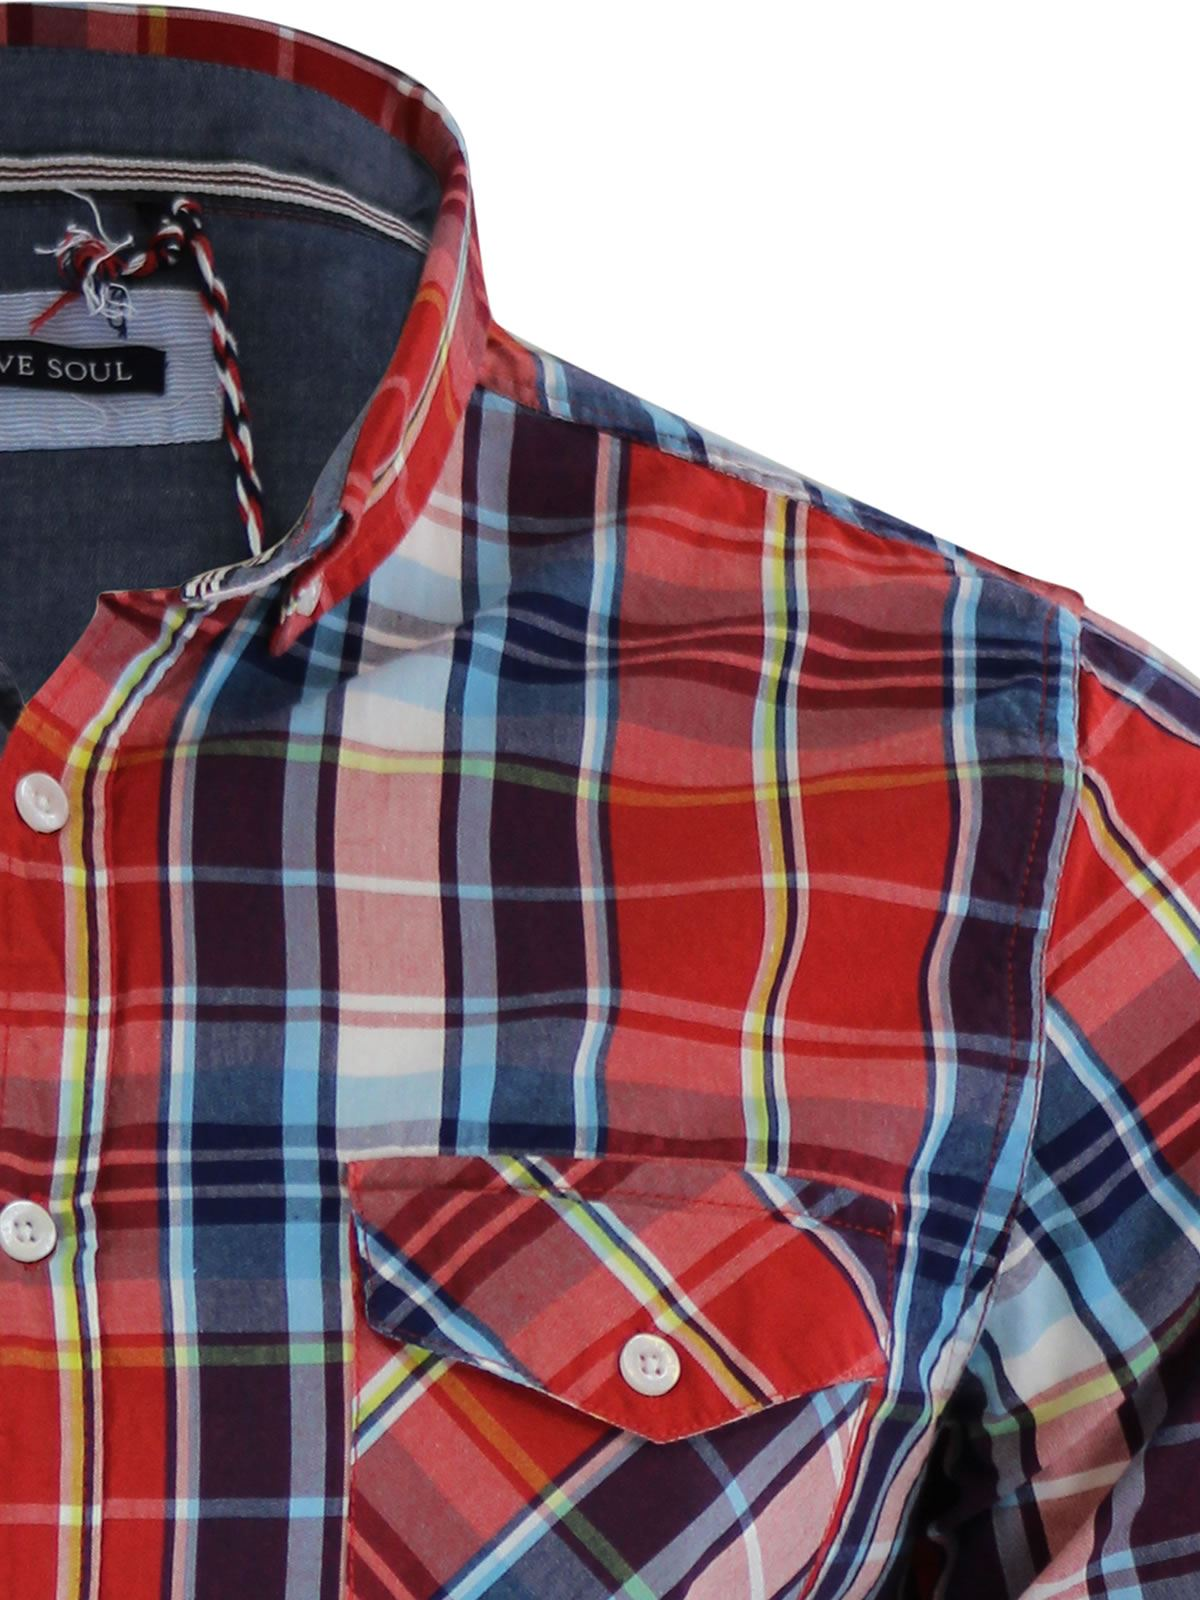 Mens-Check-Shirt-Brave-Soul-Flannel-Brushed-Cotton-Long-Sleeve-Casual-Top thumbnail 52